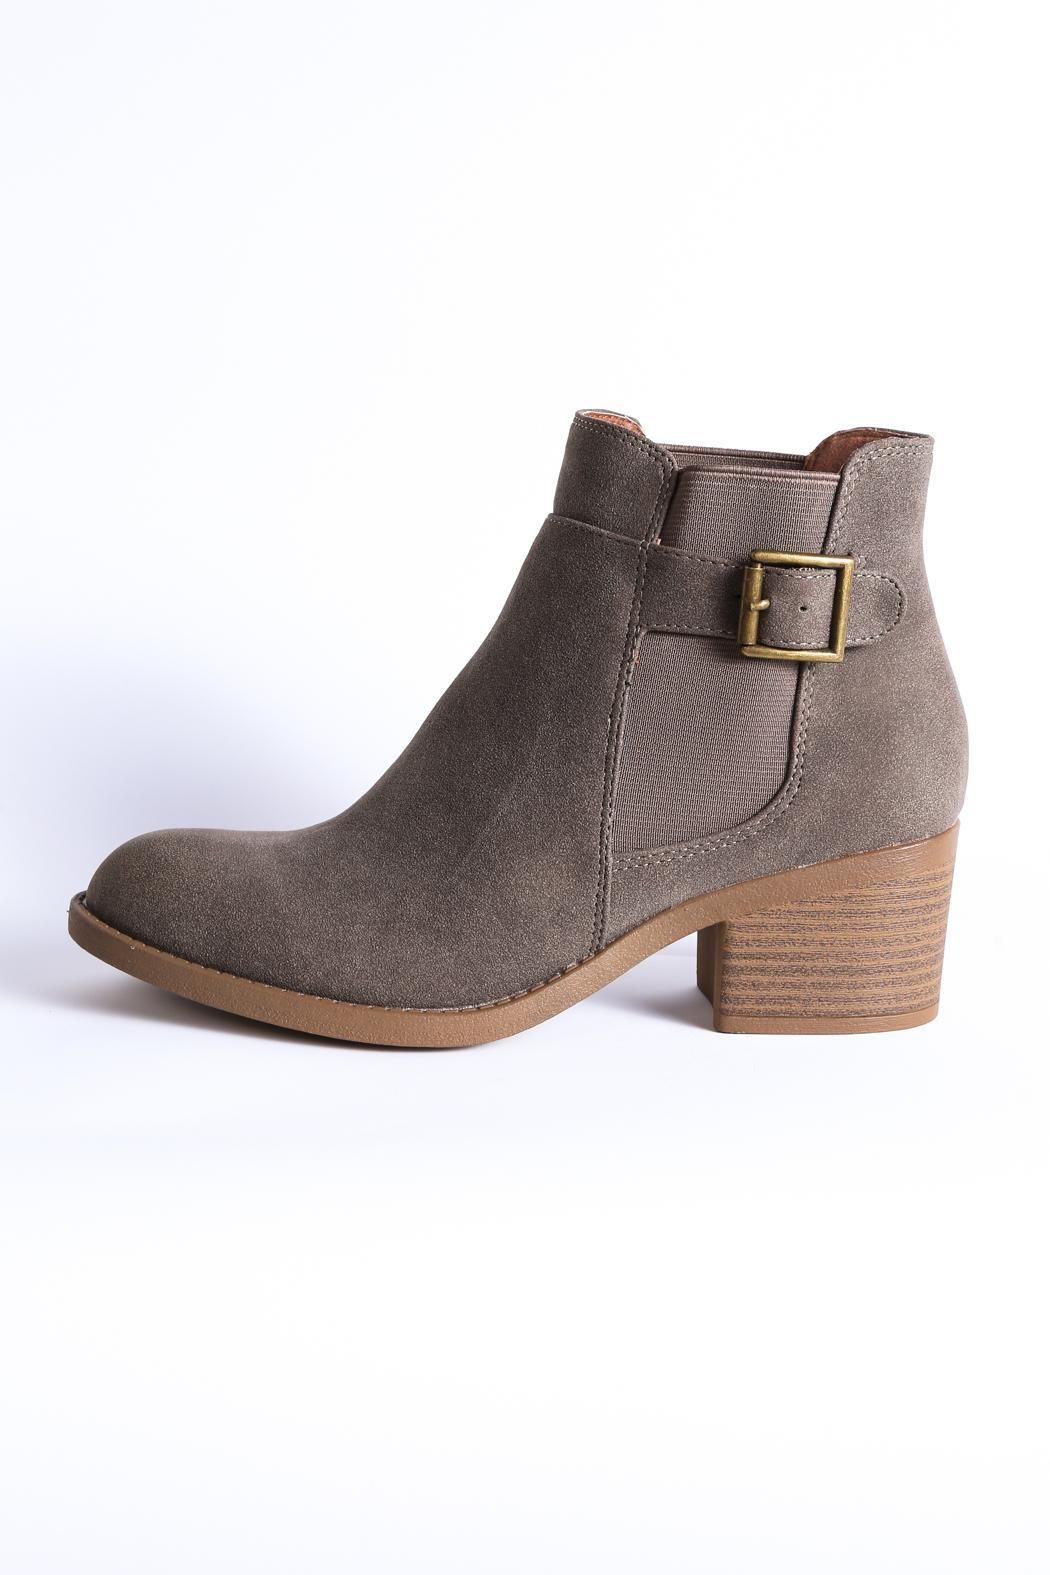 "Featuring a nubuck leather look and faux wood heel, this beauty will be a staple in your wardrobe. Wear with dresses, skinnies, skirts, you name it! Toe: Round. Style: Chelsea boot. Closure: Slip on. Side goring. Nubuck look. Wood look heel. Buckle detail. Loose without socks; just right with socks!    Heel height: 2.25"" heel height. 5.75"" shaft height.    Philly Ankle Boot by Qupid. Shoes - Booties - Heeled Georgia"